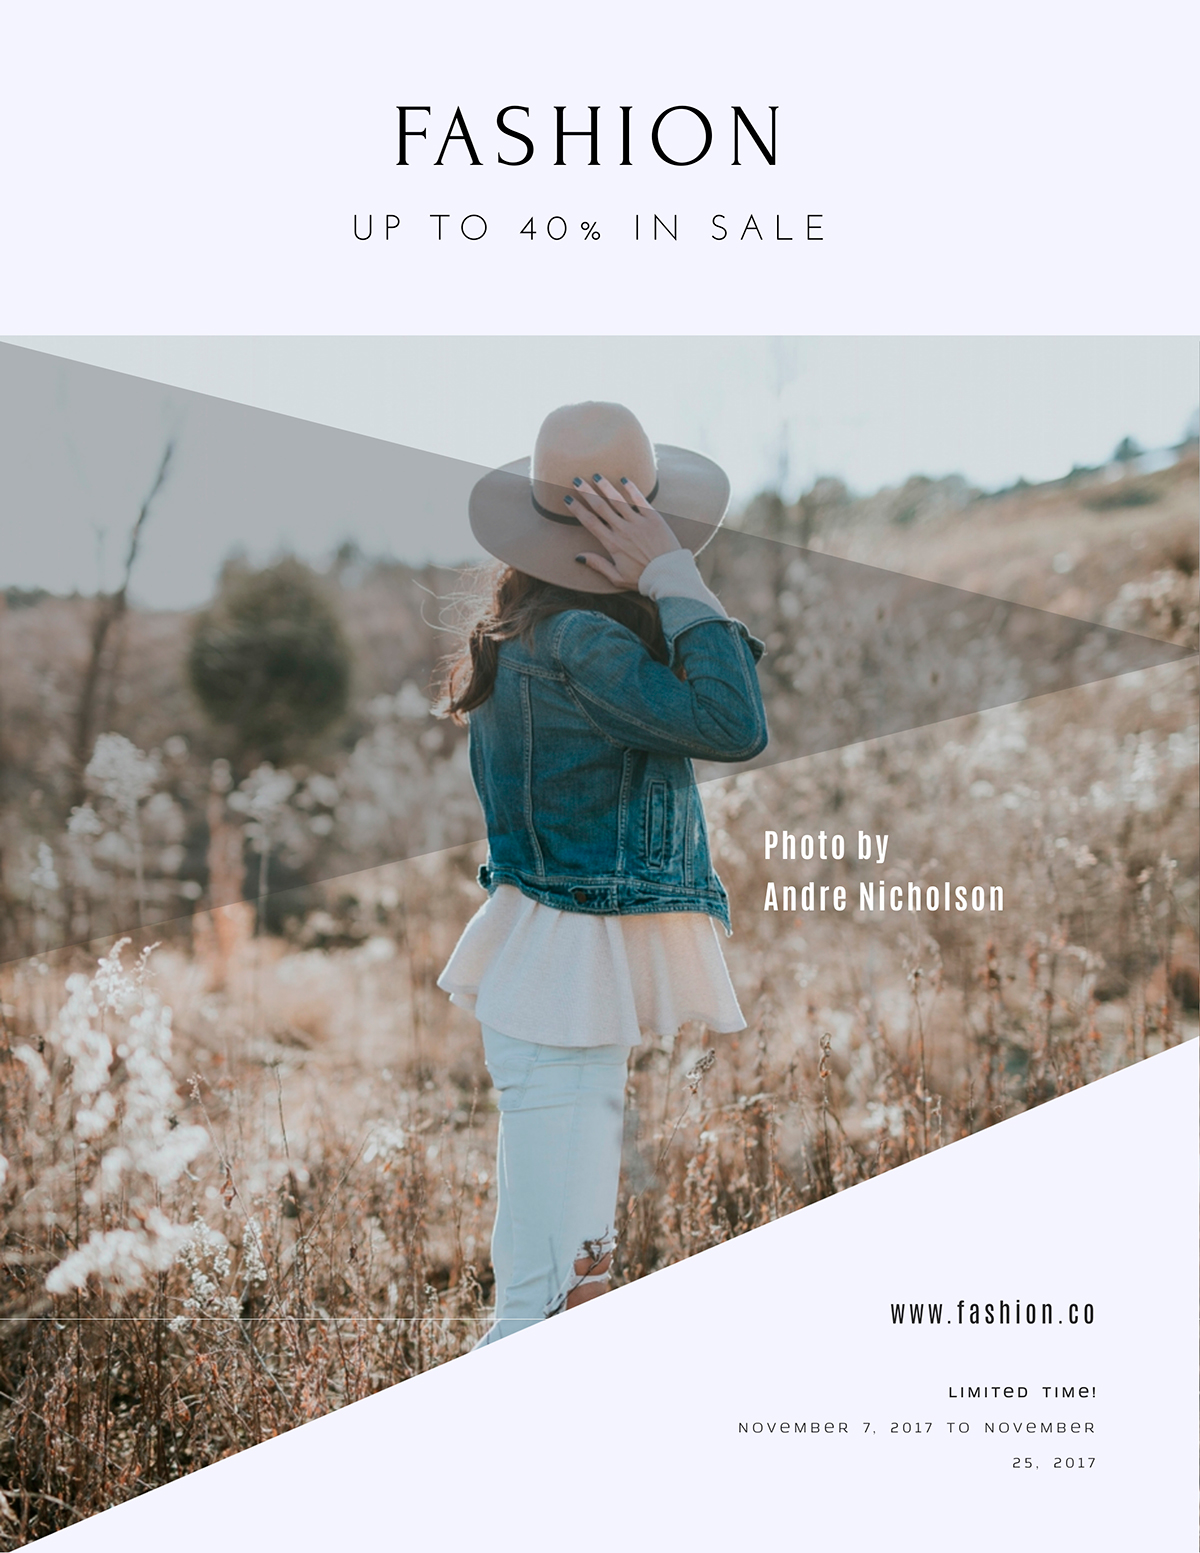 A fashion flyer template available in Visme.